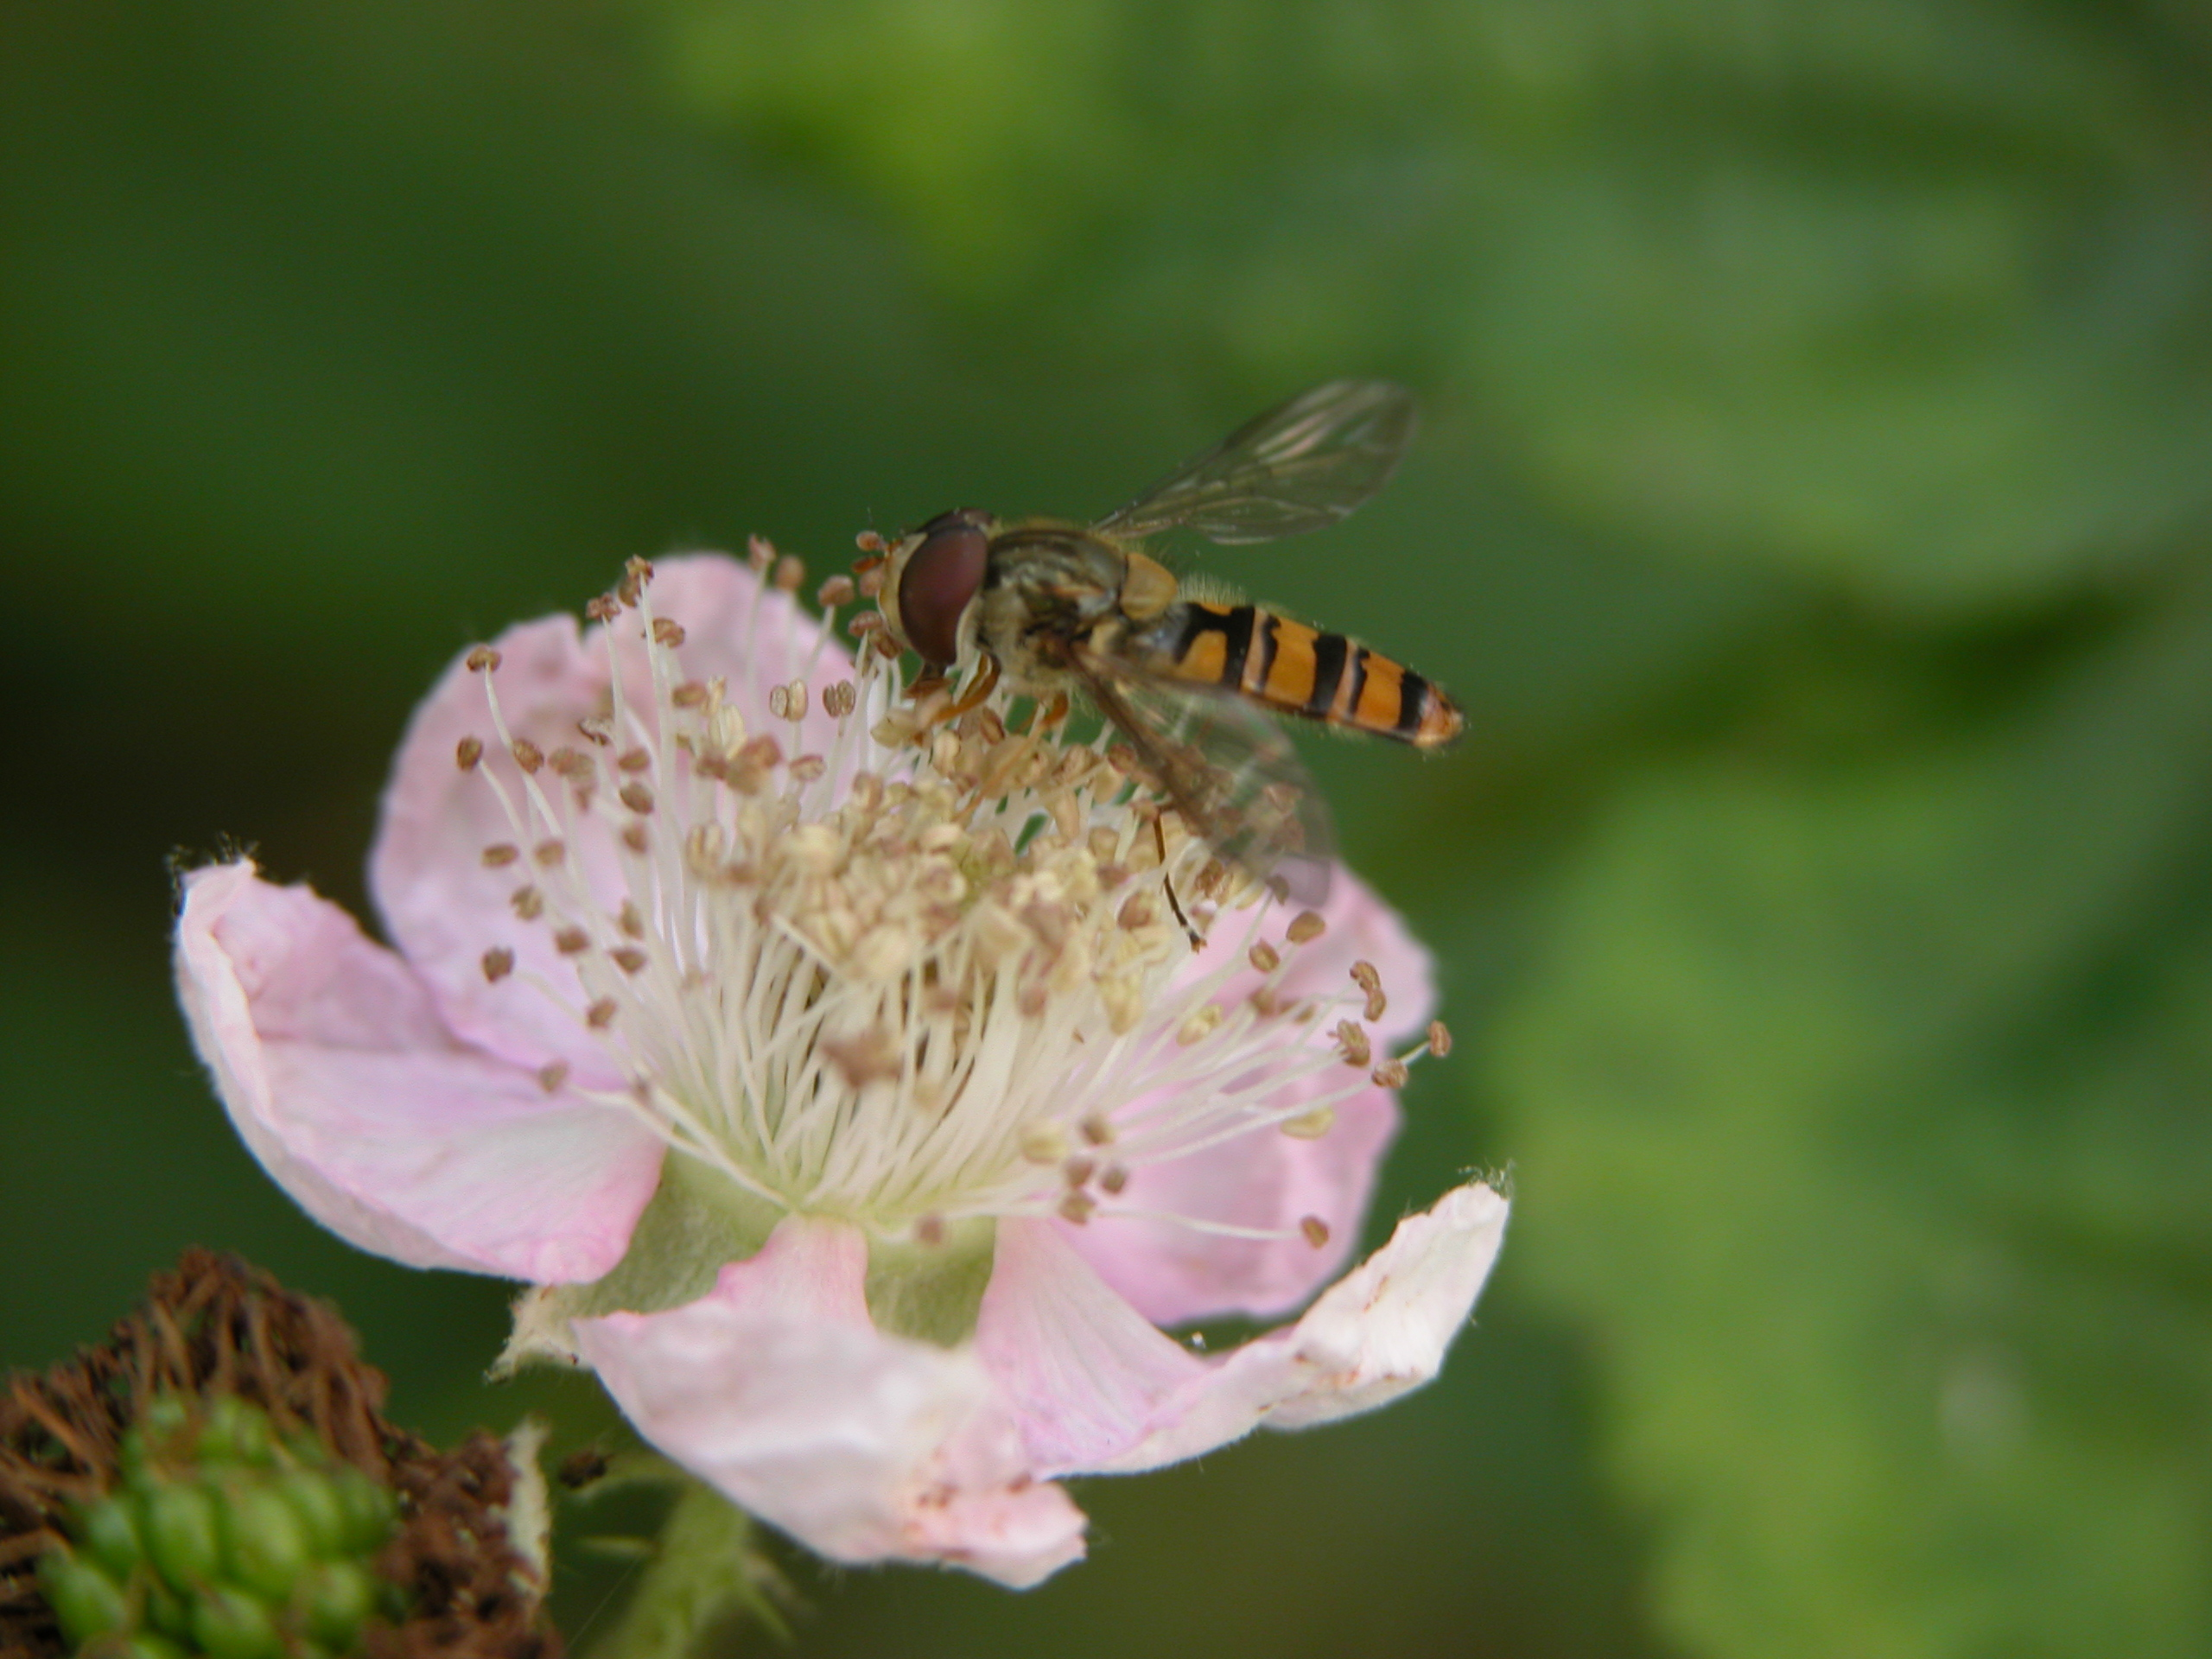 flower pink petals wasp insect nectar pollen fly